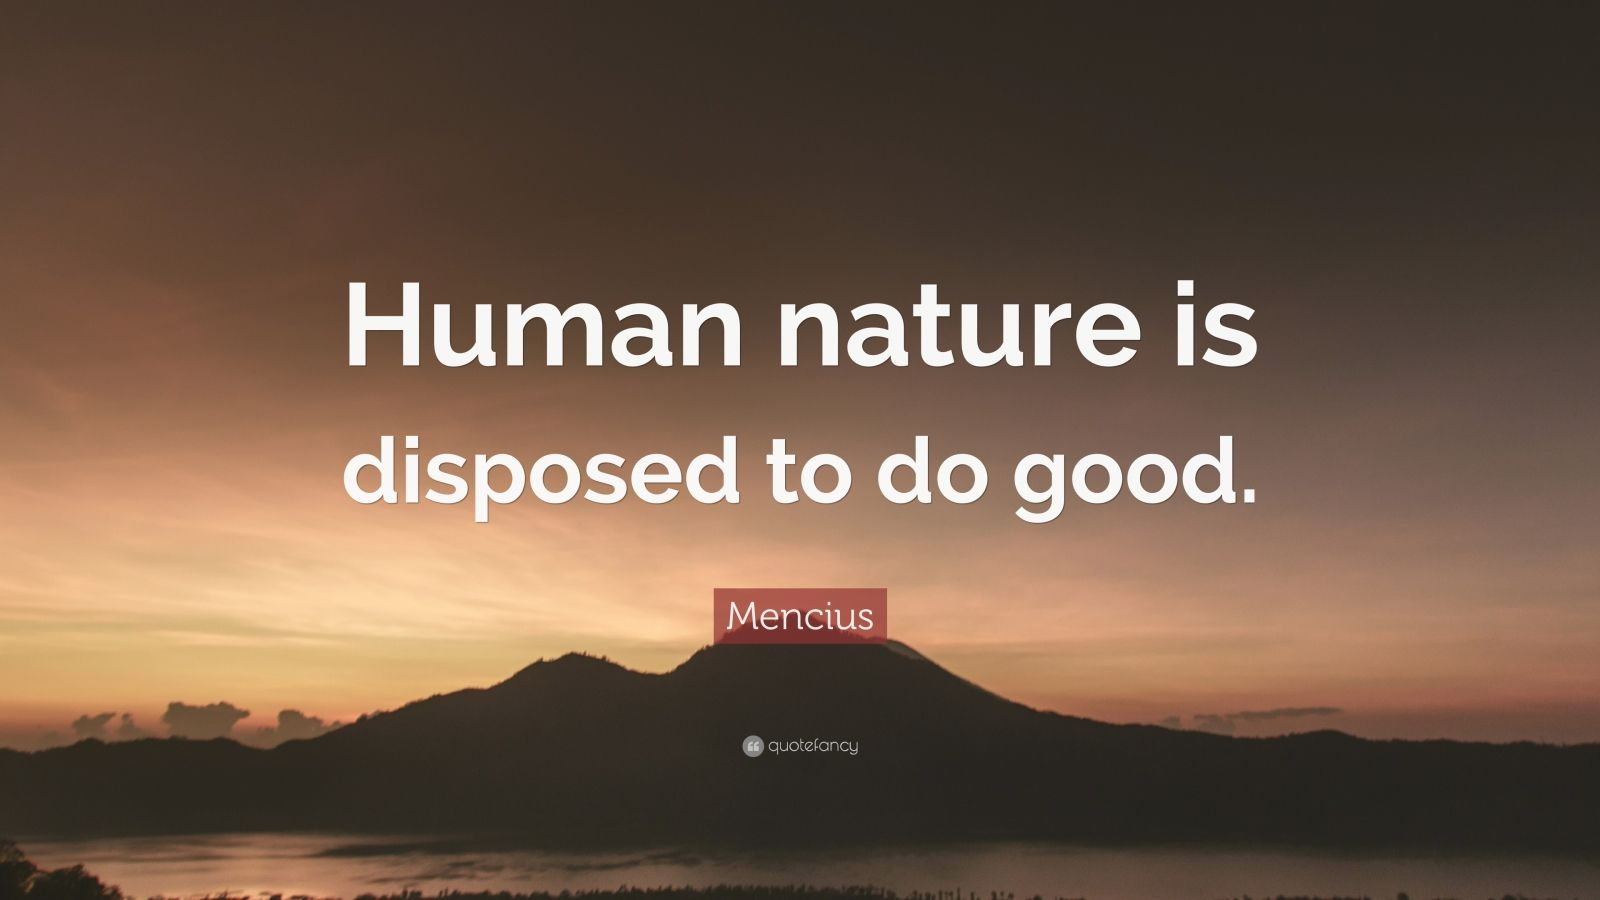 mencius is human nature good or